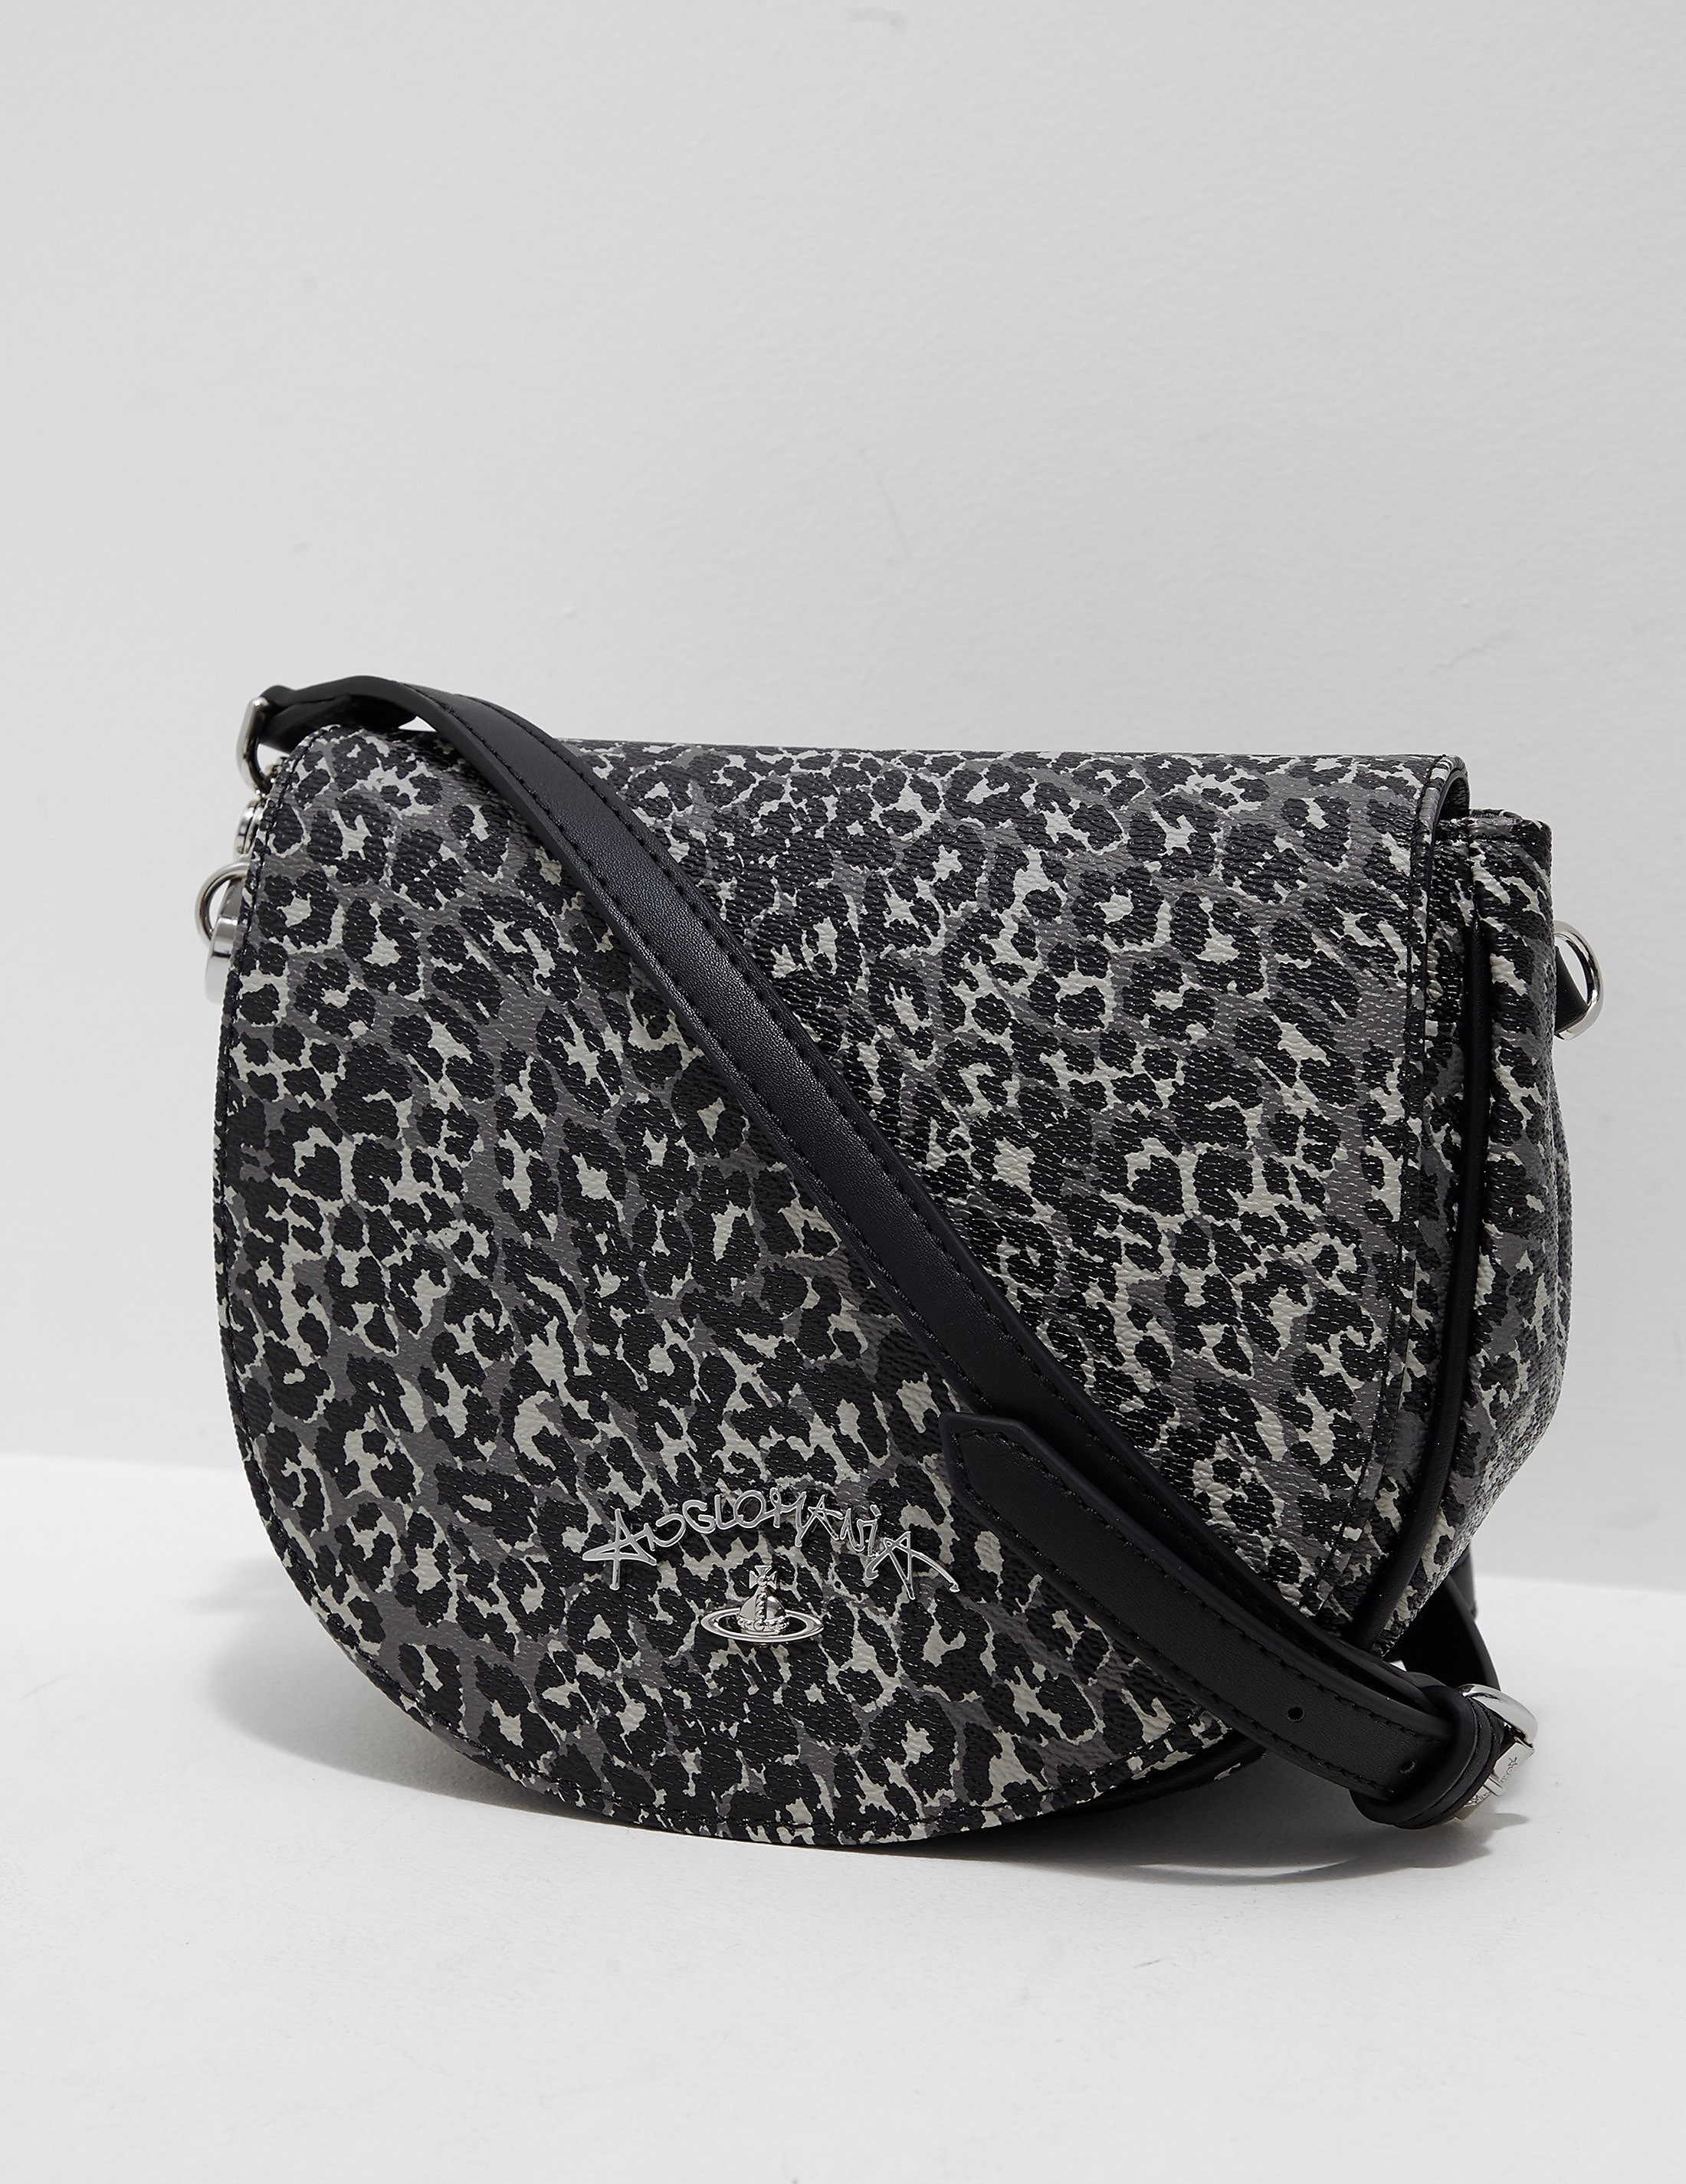 Vivienne Westwood Leopard Shoulder Bag